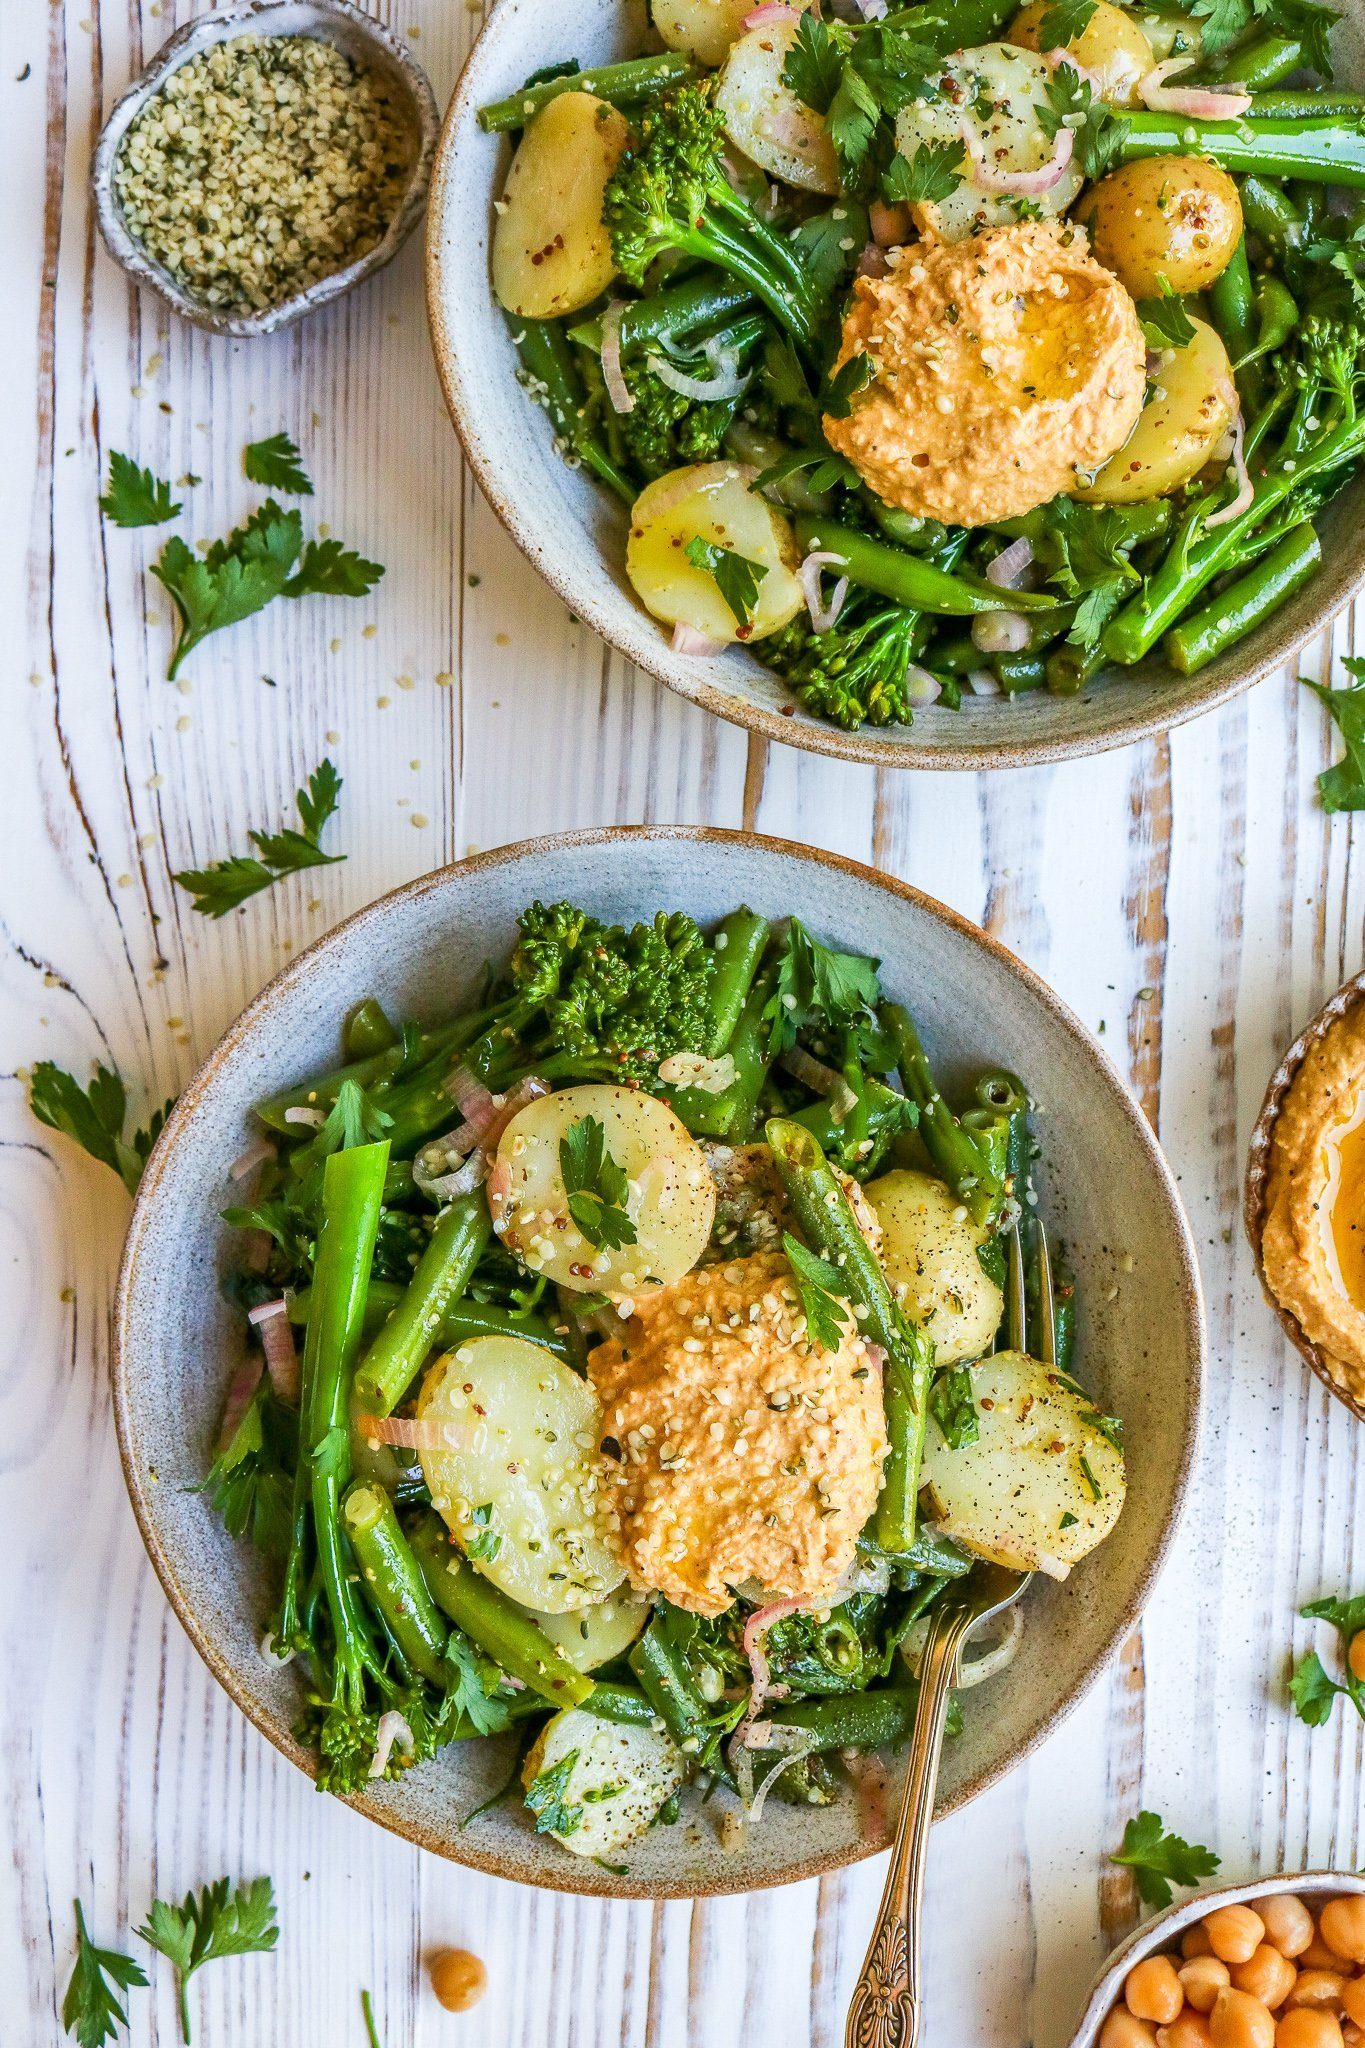 Summer Potato Salad with Sweet Pepper Hummus